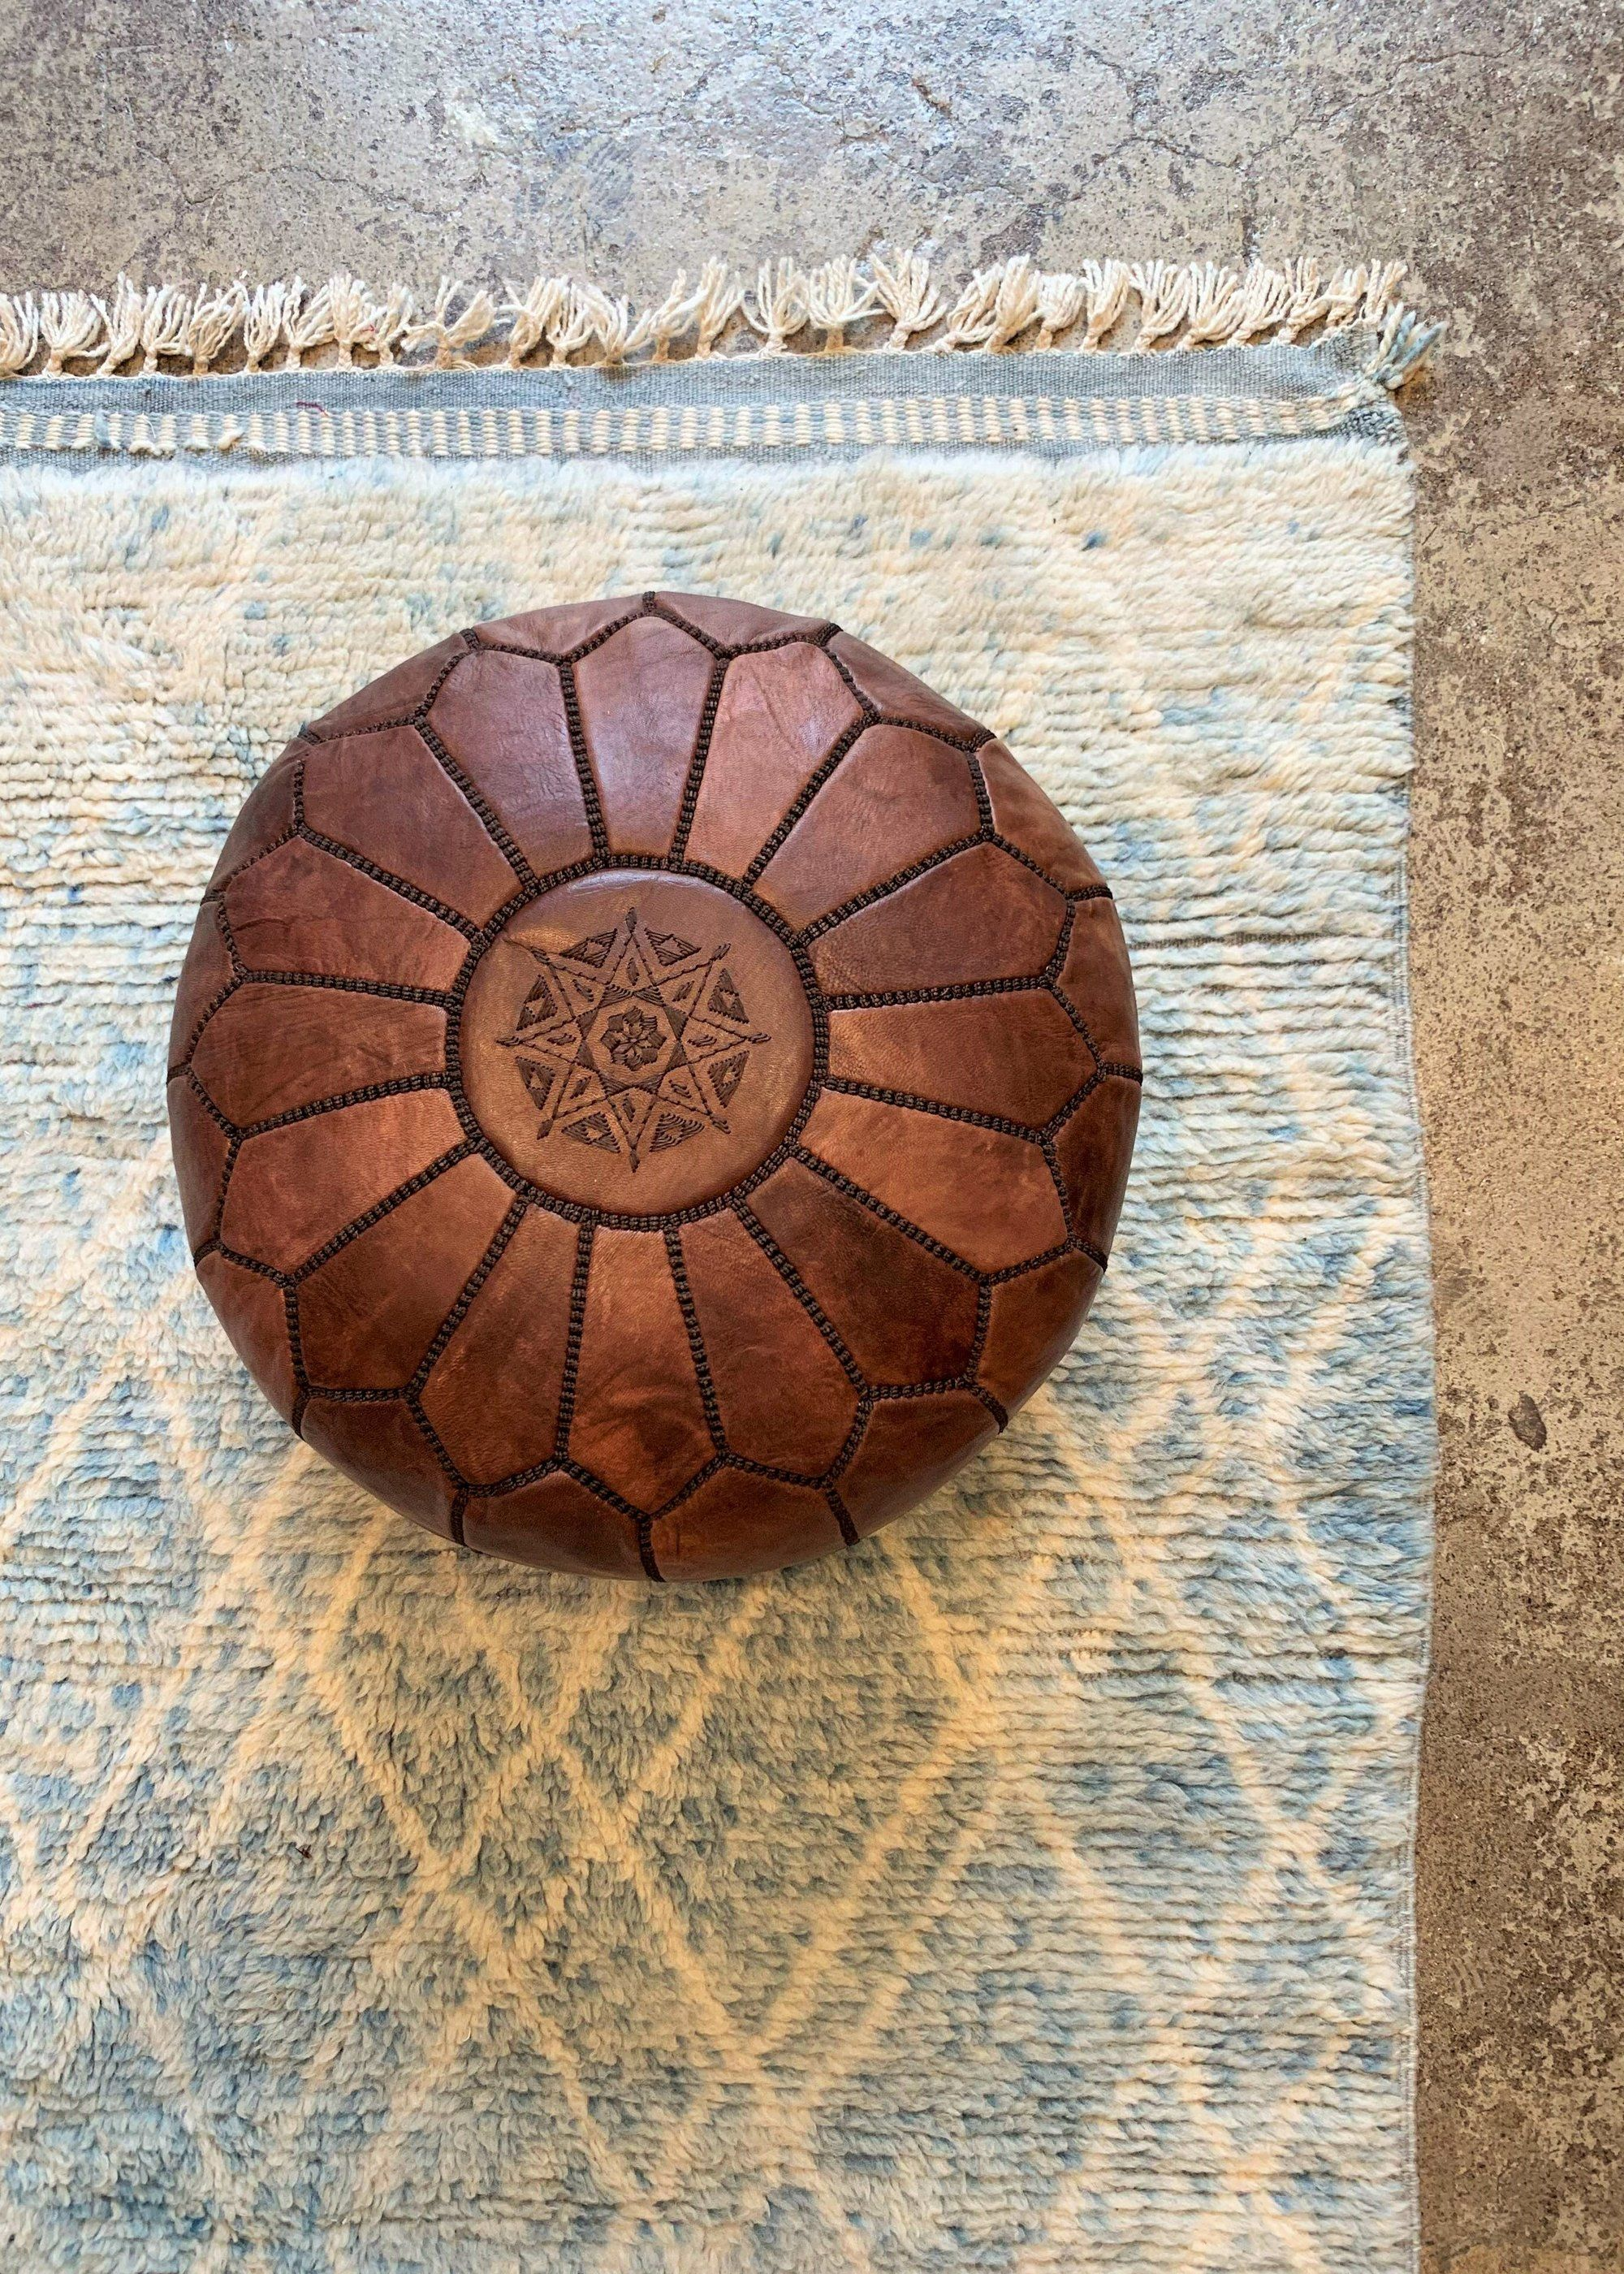 Moroccan Leather Pouf Dark Brown In 2020 Leather Pouf Leather Ottoman Round Leather Ottoman